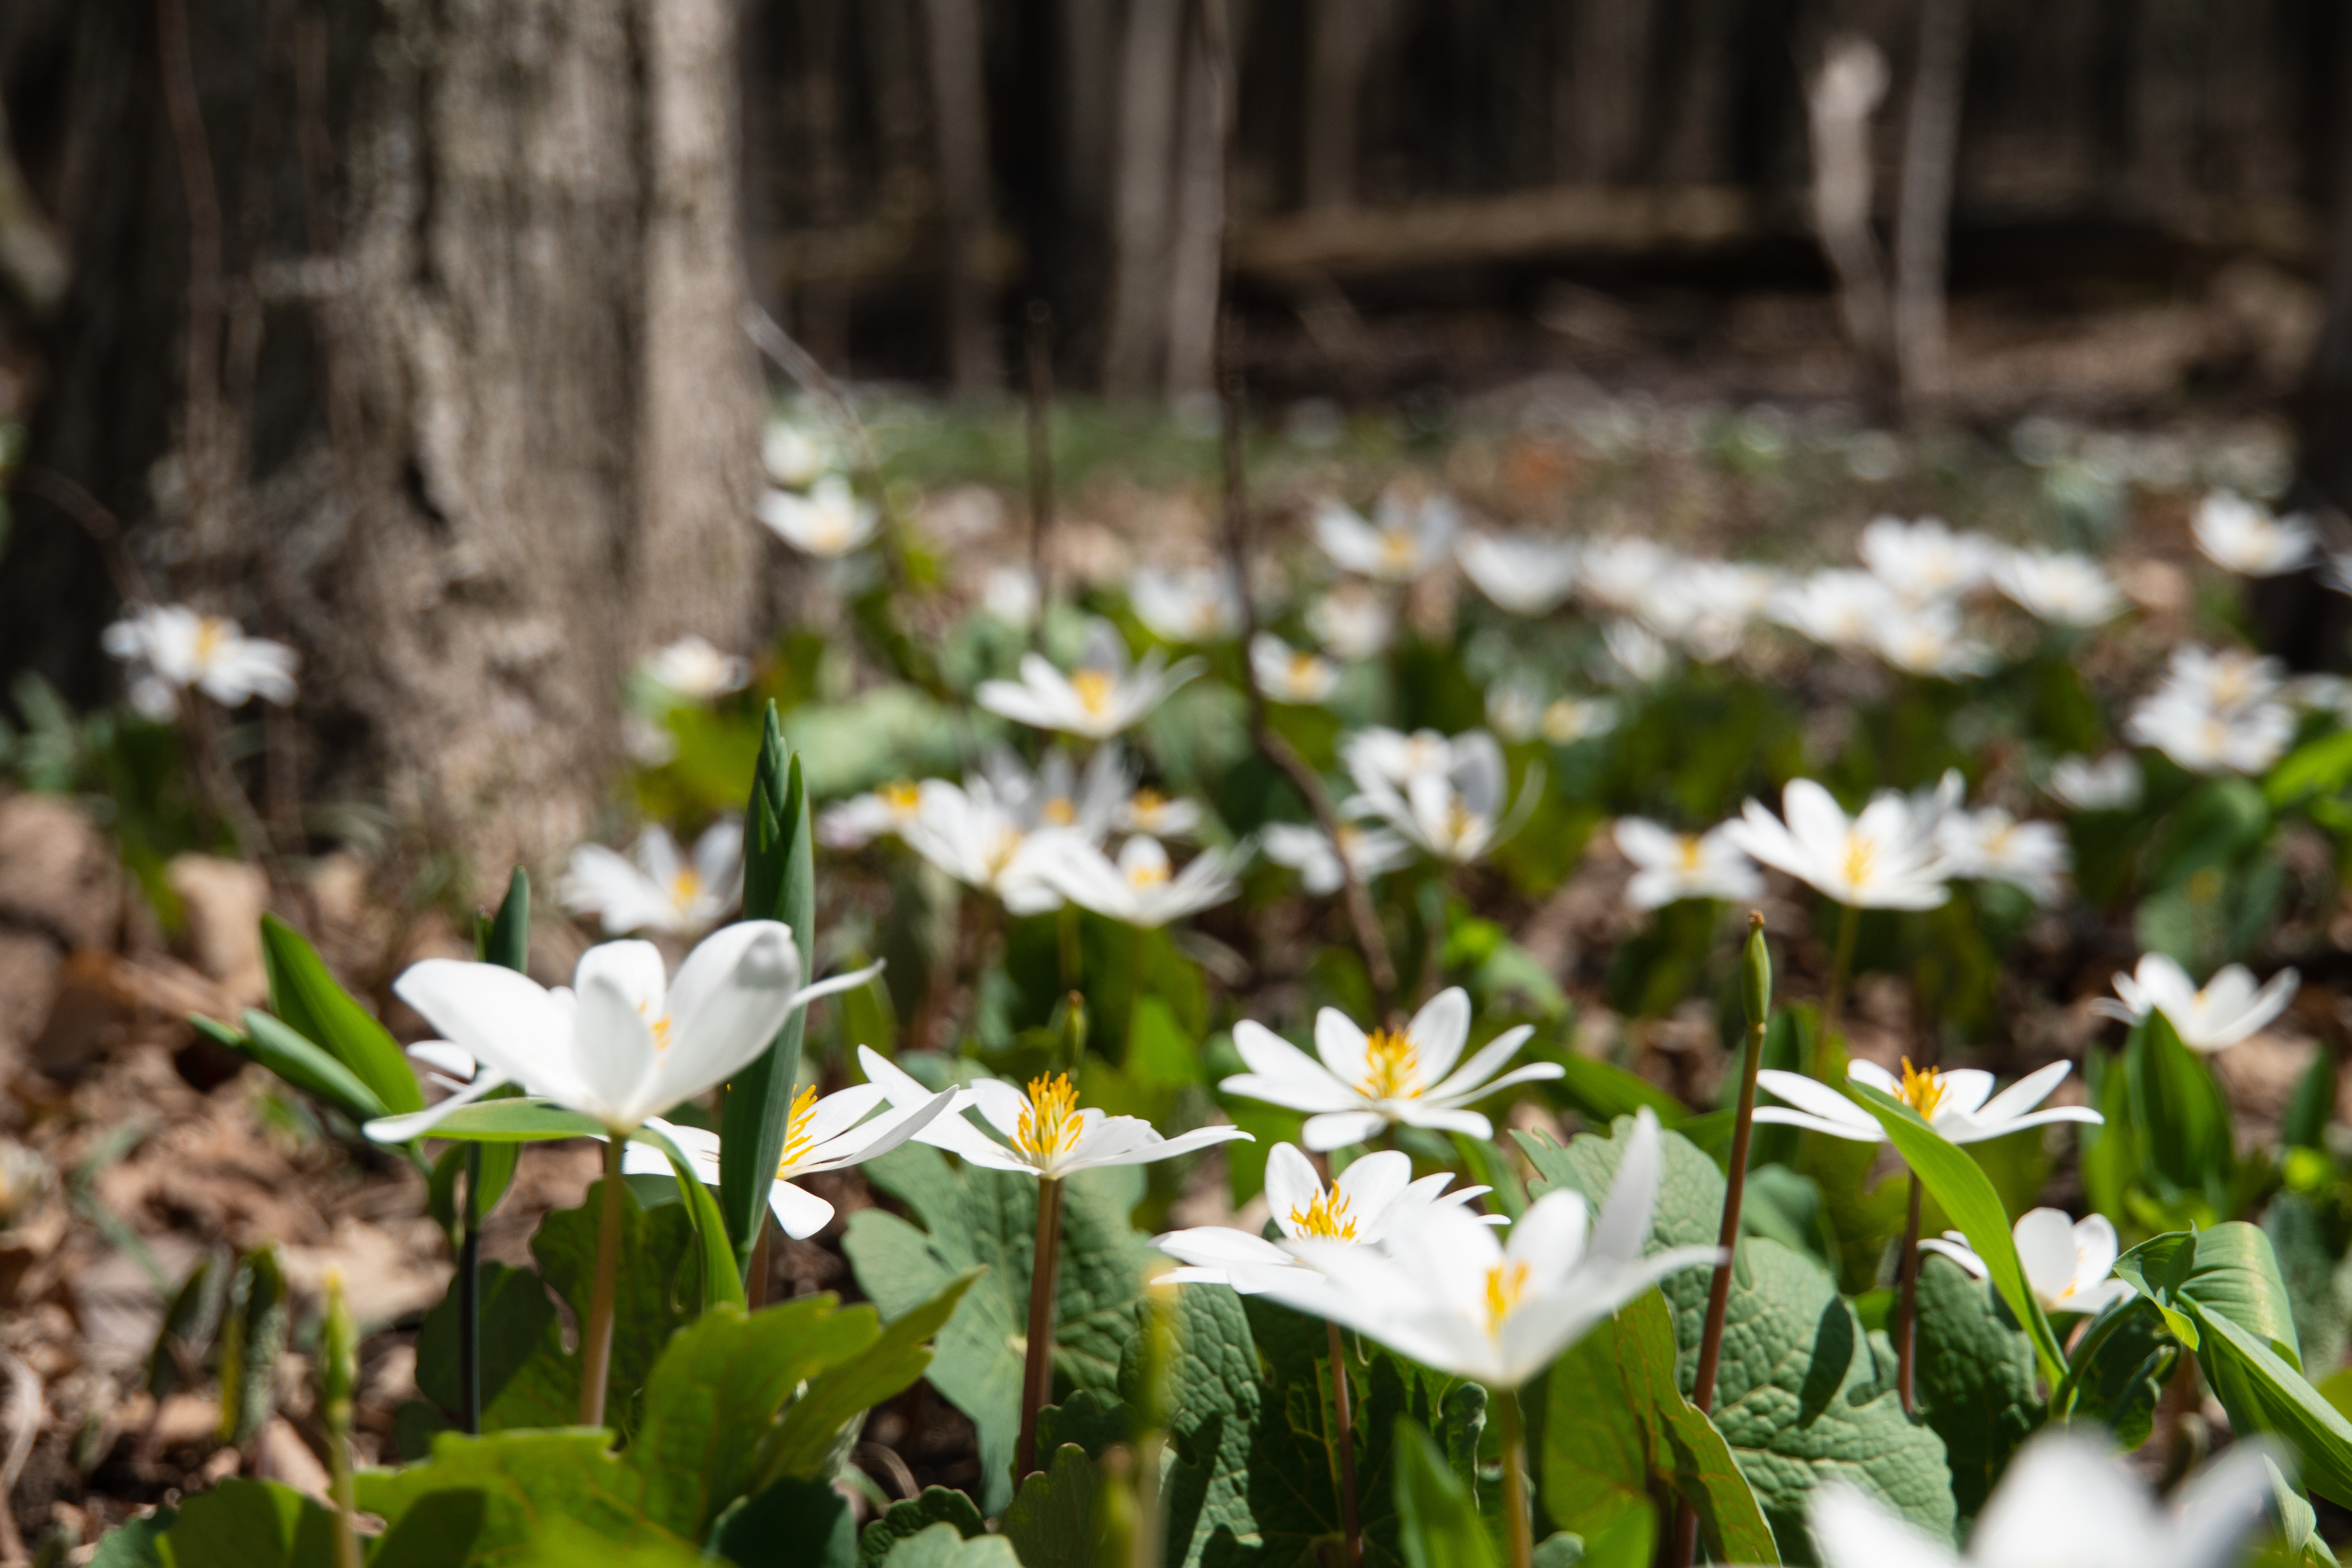 (1/4) Fermilab ecologist Wally Levernier led a wildflower walk for Earth Day on April 22. Bloodroot carpets the landscape. nature, plant, flower, bloodroot, woods Photo: Marguerite Tonjes